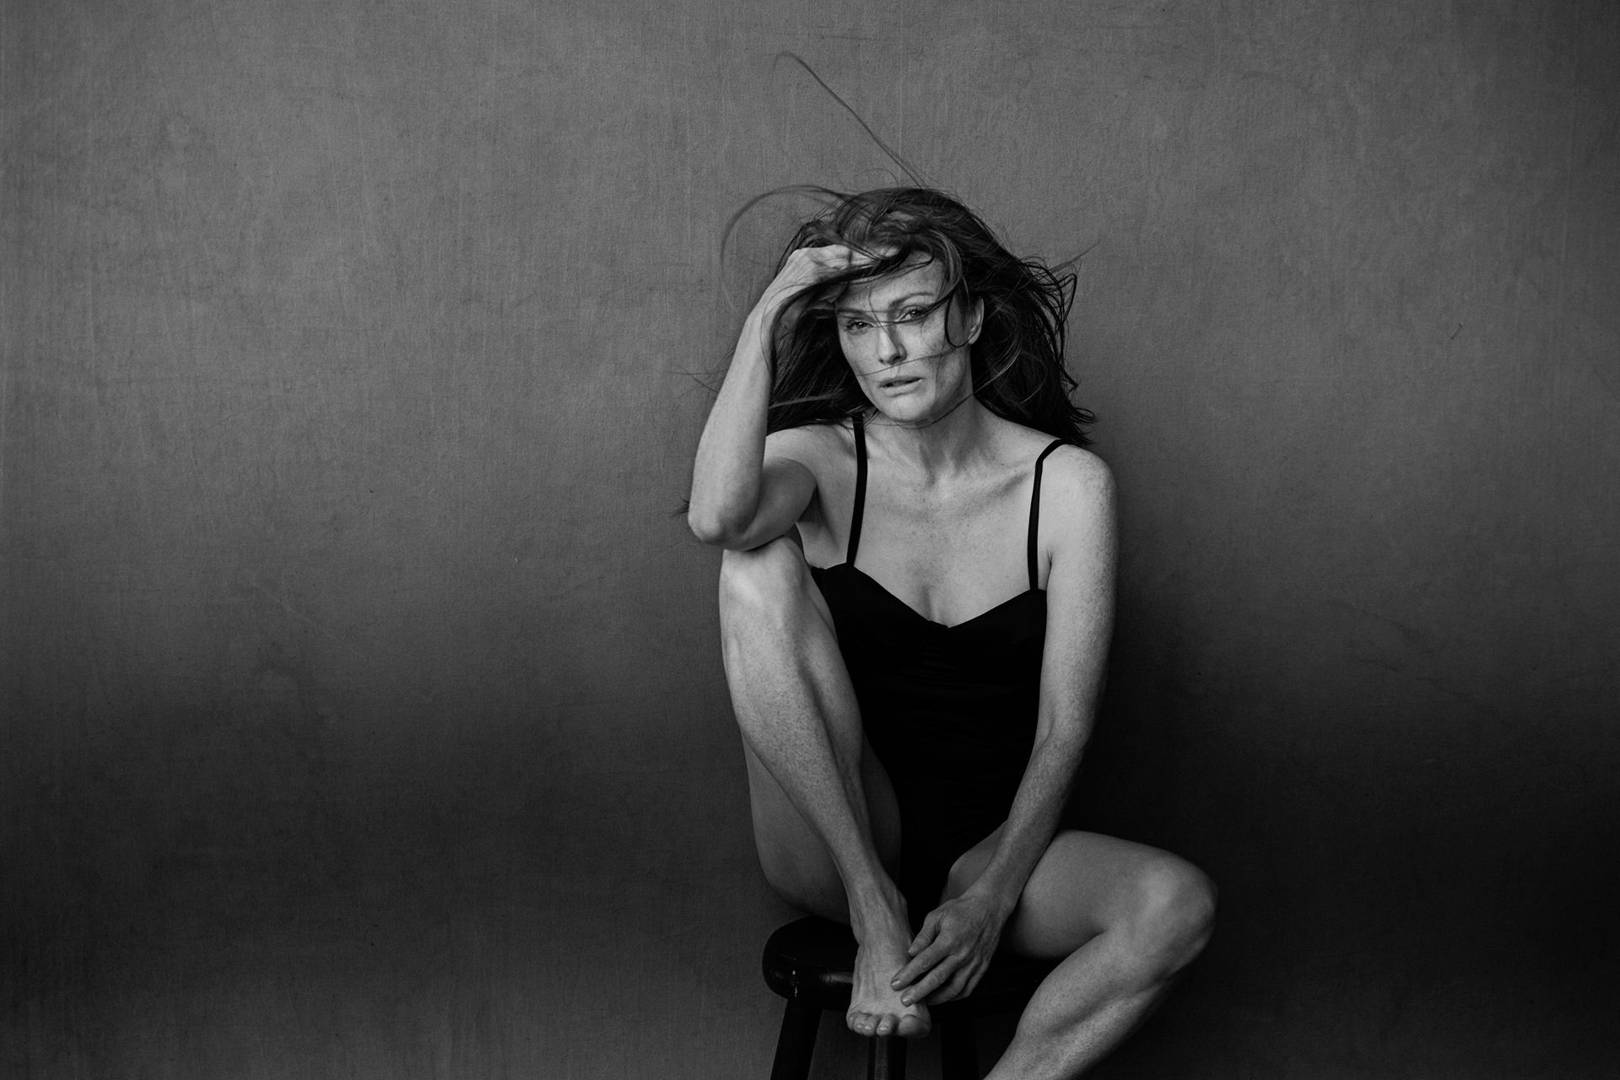 Pirelli Calendar Nixes Nudes For A New Direction In 2019 Pirelli Calendar Nixes Nudes For A New Direction In 2019 new picture